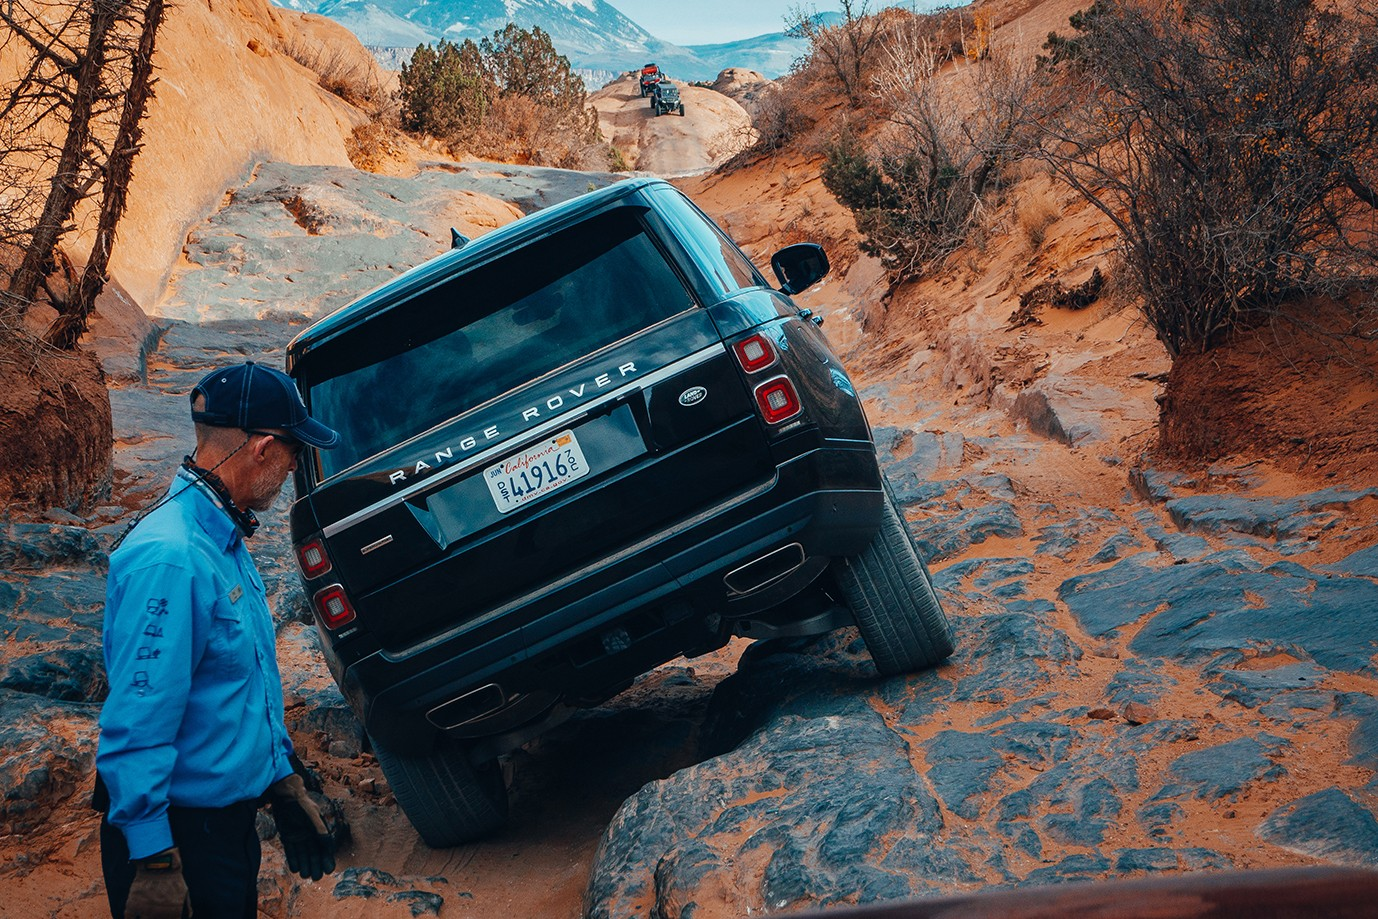 Land Rover Adventure Experience Moab Utah Info  Range Rover SUVs Luxury travel Discovery rock-crawling off-roading canyonlands